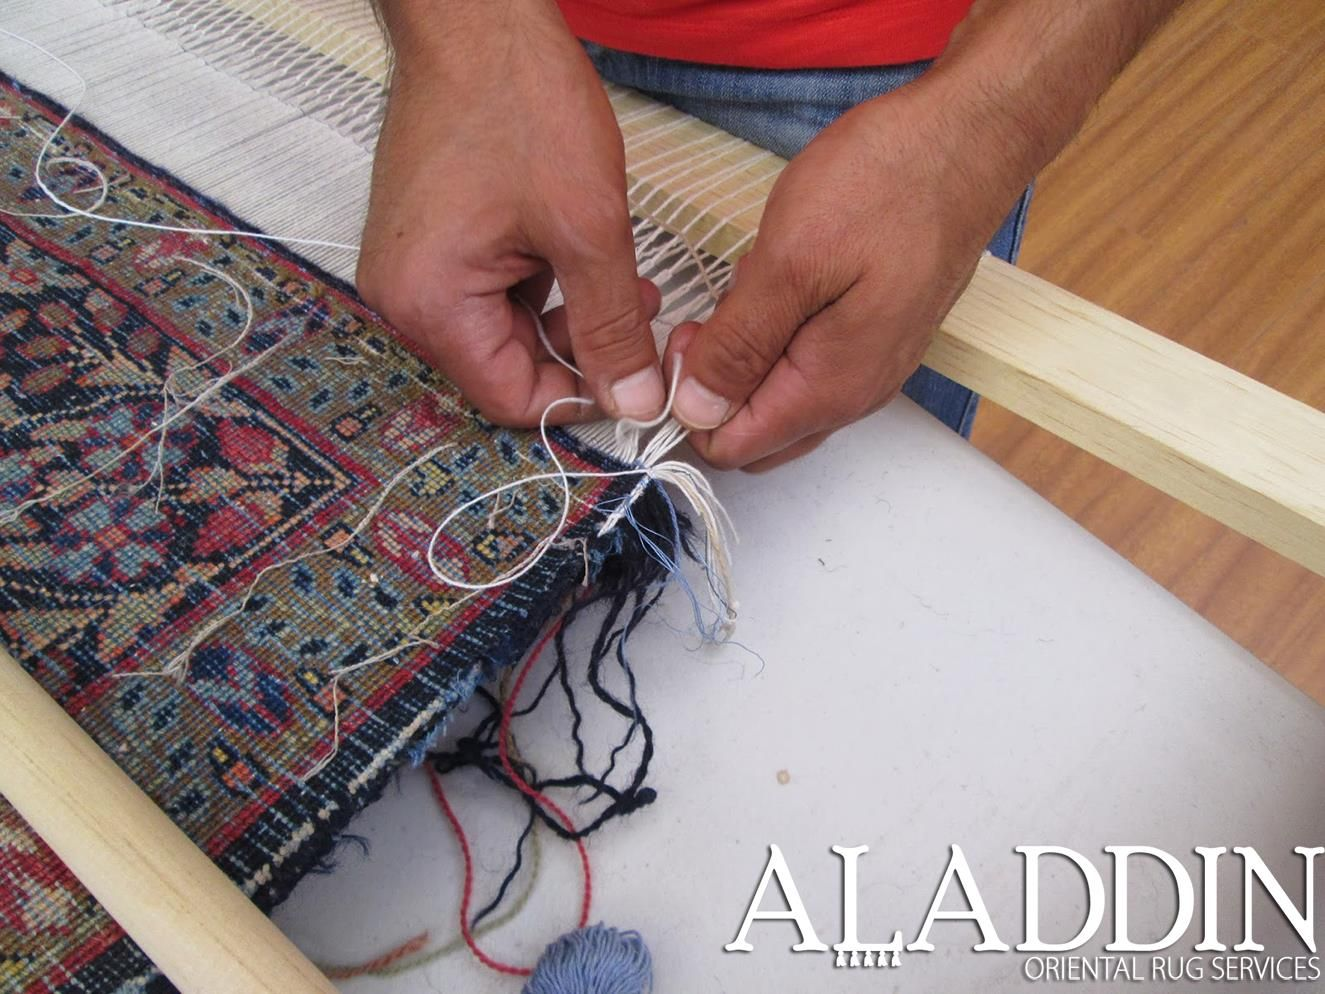 Restore the original beauty of your rug with help from our repair experts, no matter the extent of damage. Our professional staff is able to recreate and reweave portions of any rug and its underlying foundation to make a damaged piece stand out again. www.aladdinorientalrug.com (732) 456-5511 #NJ #MiddlesexCounty #Somerset County #Hunterdon County #newjersey #njrugcleaning #orientalrugs #orientalrugrepair